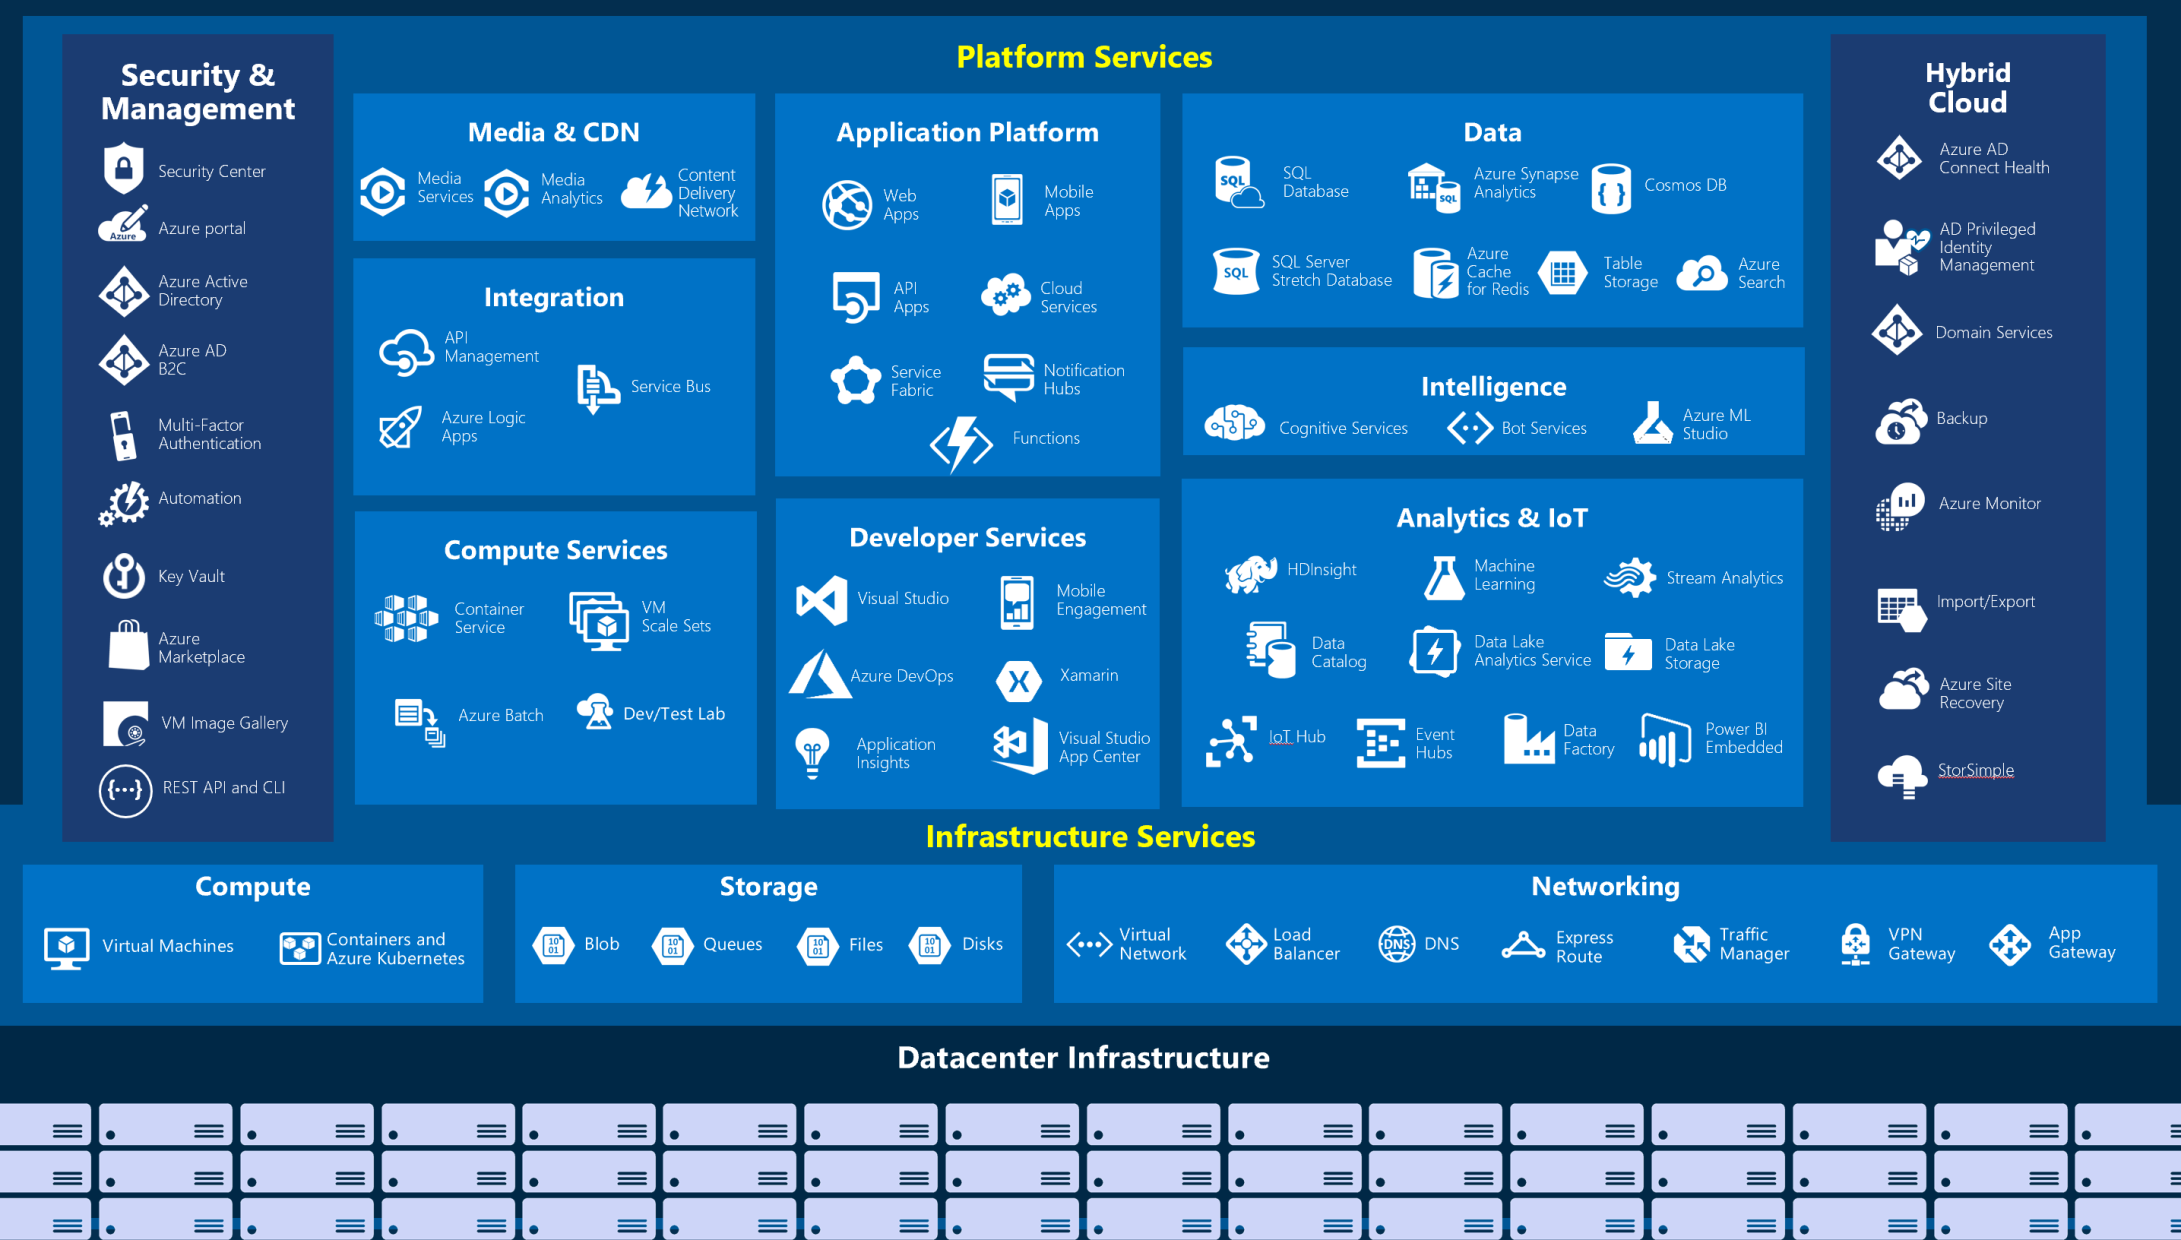 Diagram showing the big picture view of Azure services